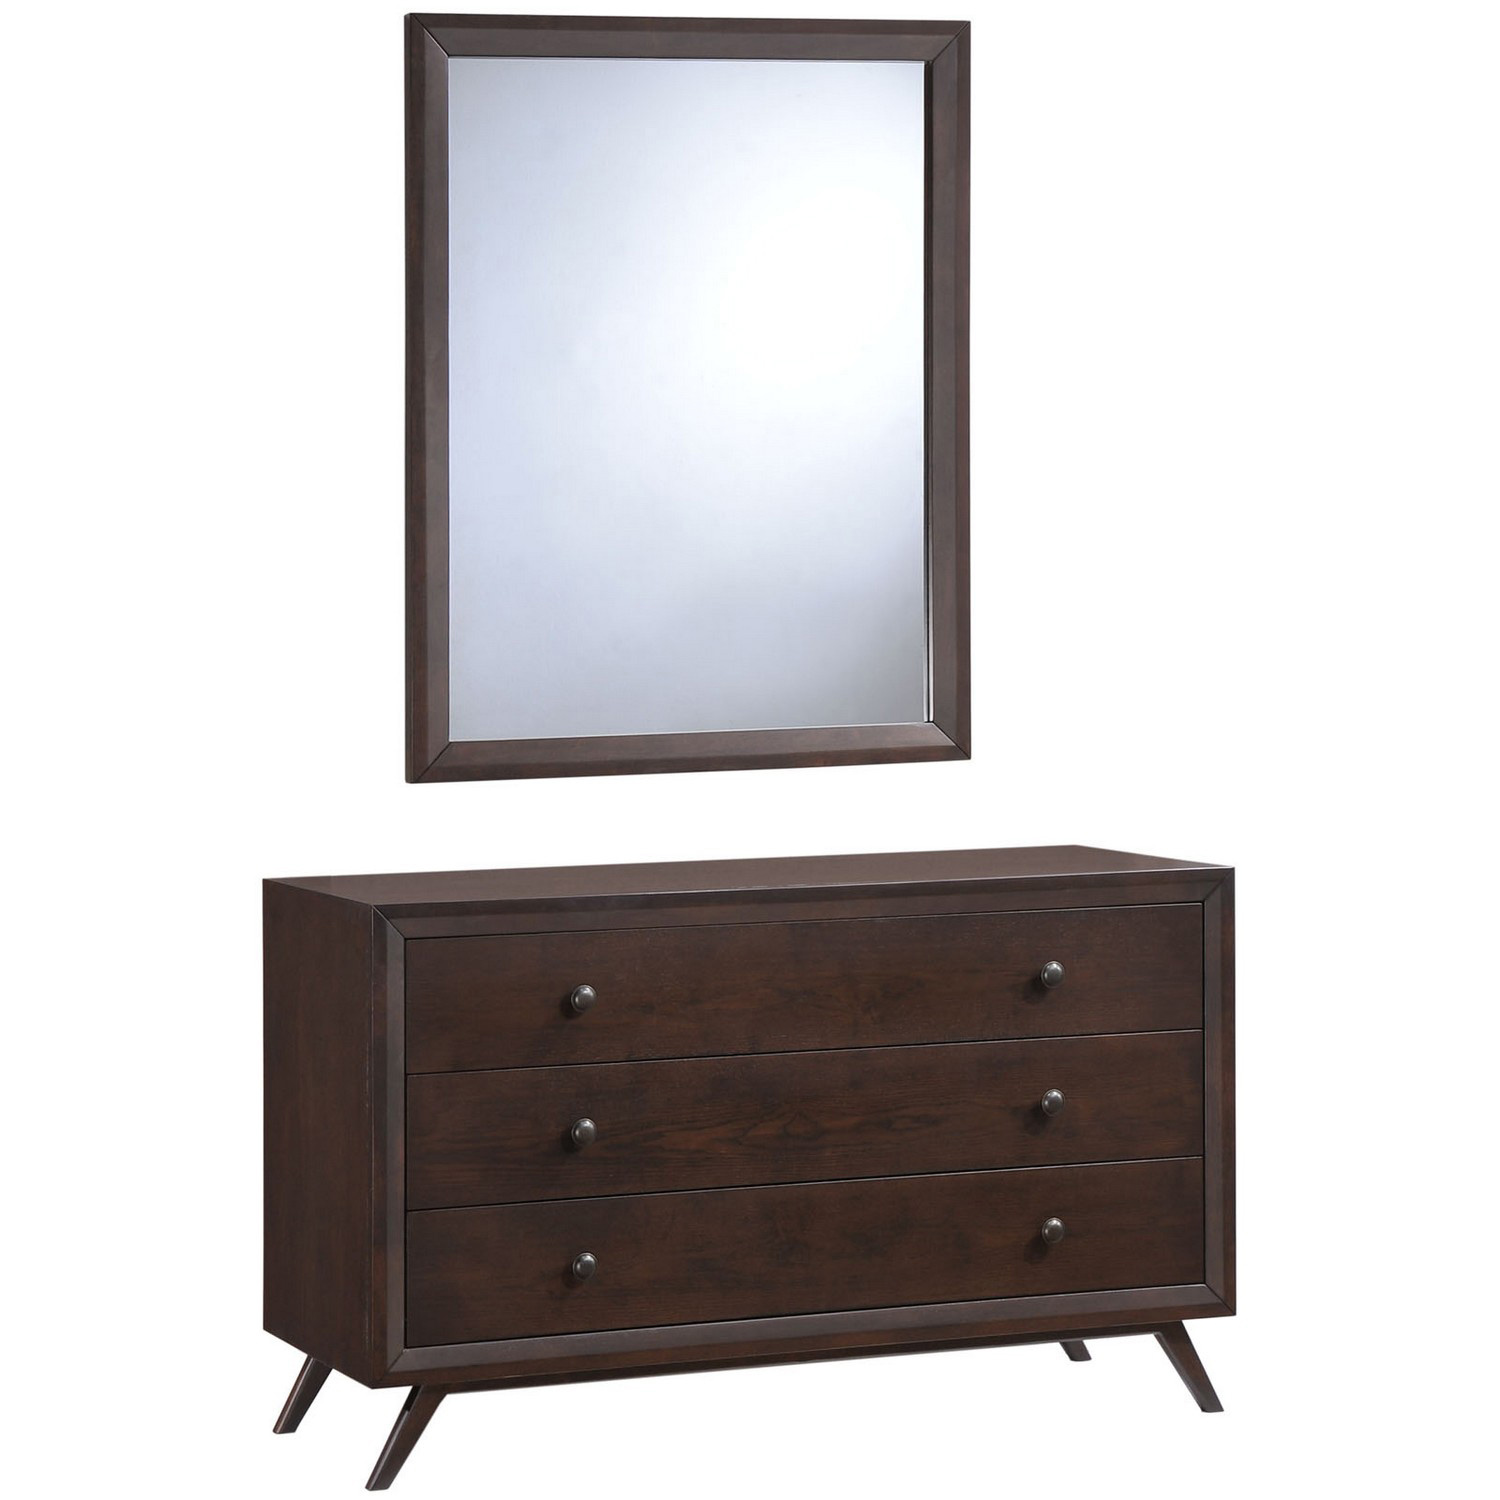 Modway Tracy Dresser and Mirror - Cappuccino